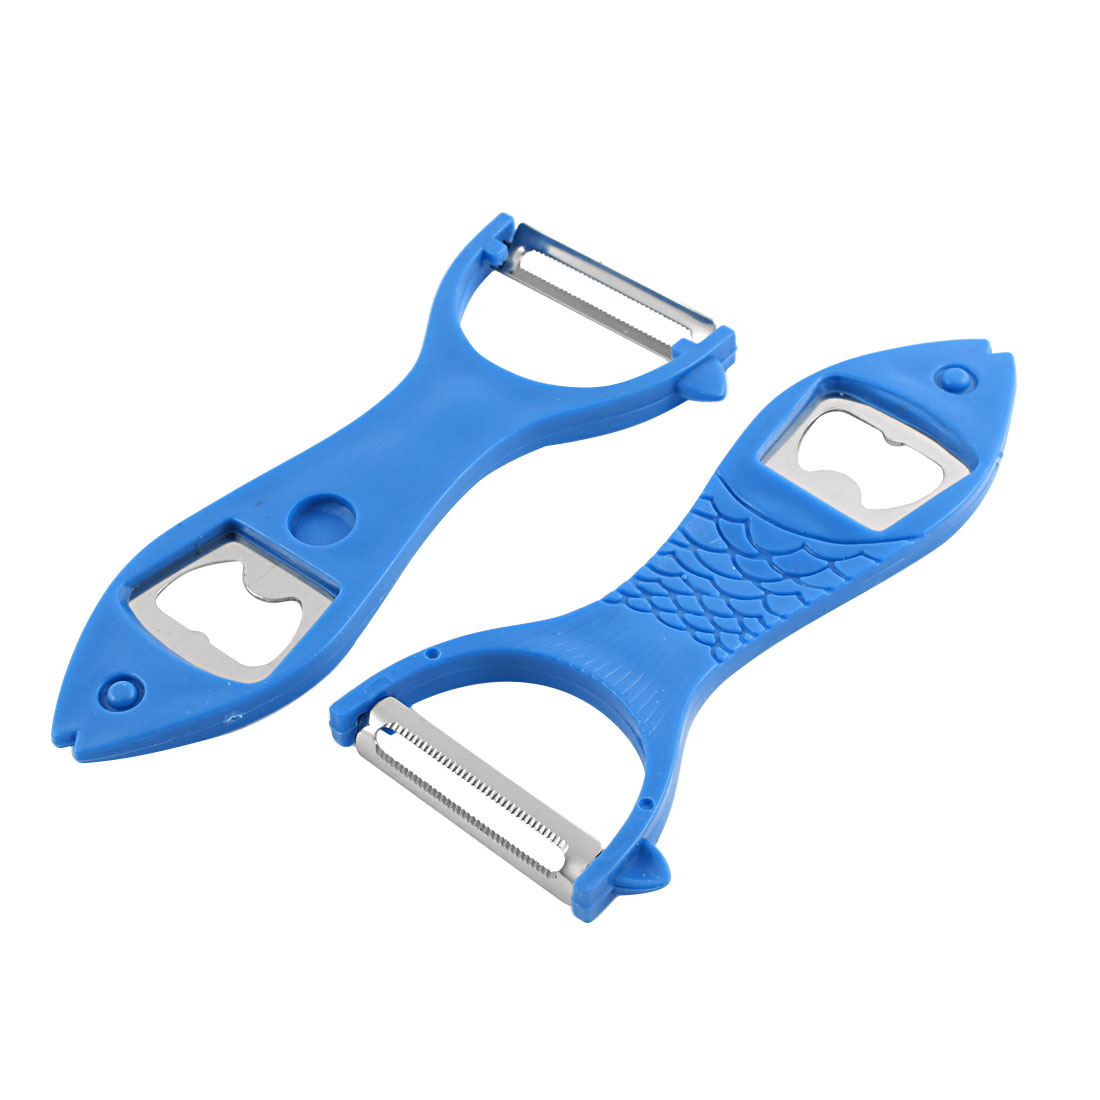 Kitchen Blue Fish Design Fruit Vegetable Peeler Cutter Slicer Beer Openner 2 Pcs